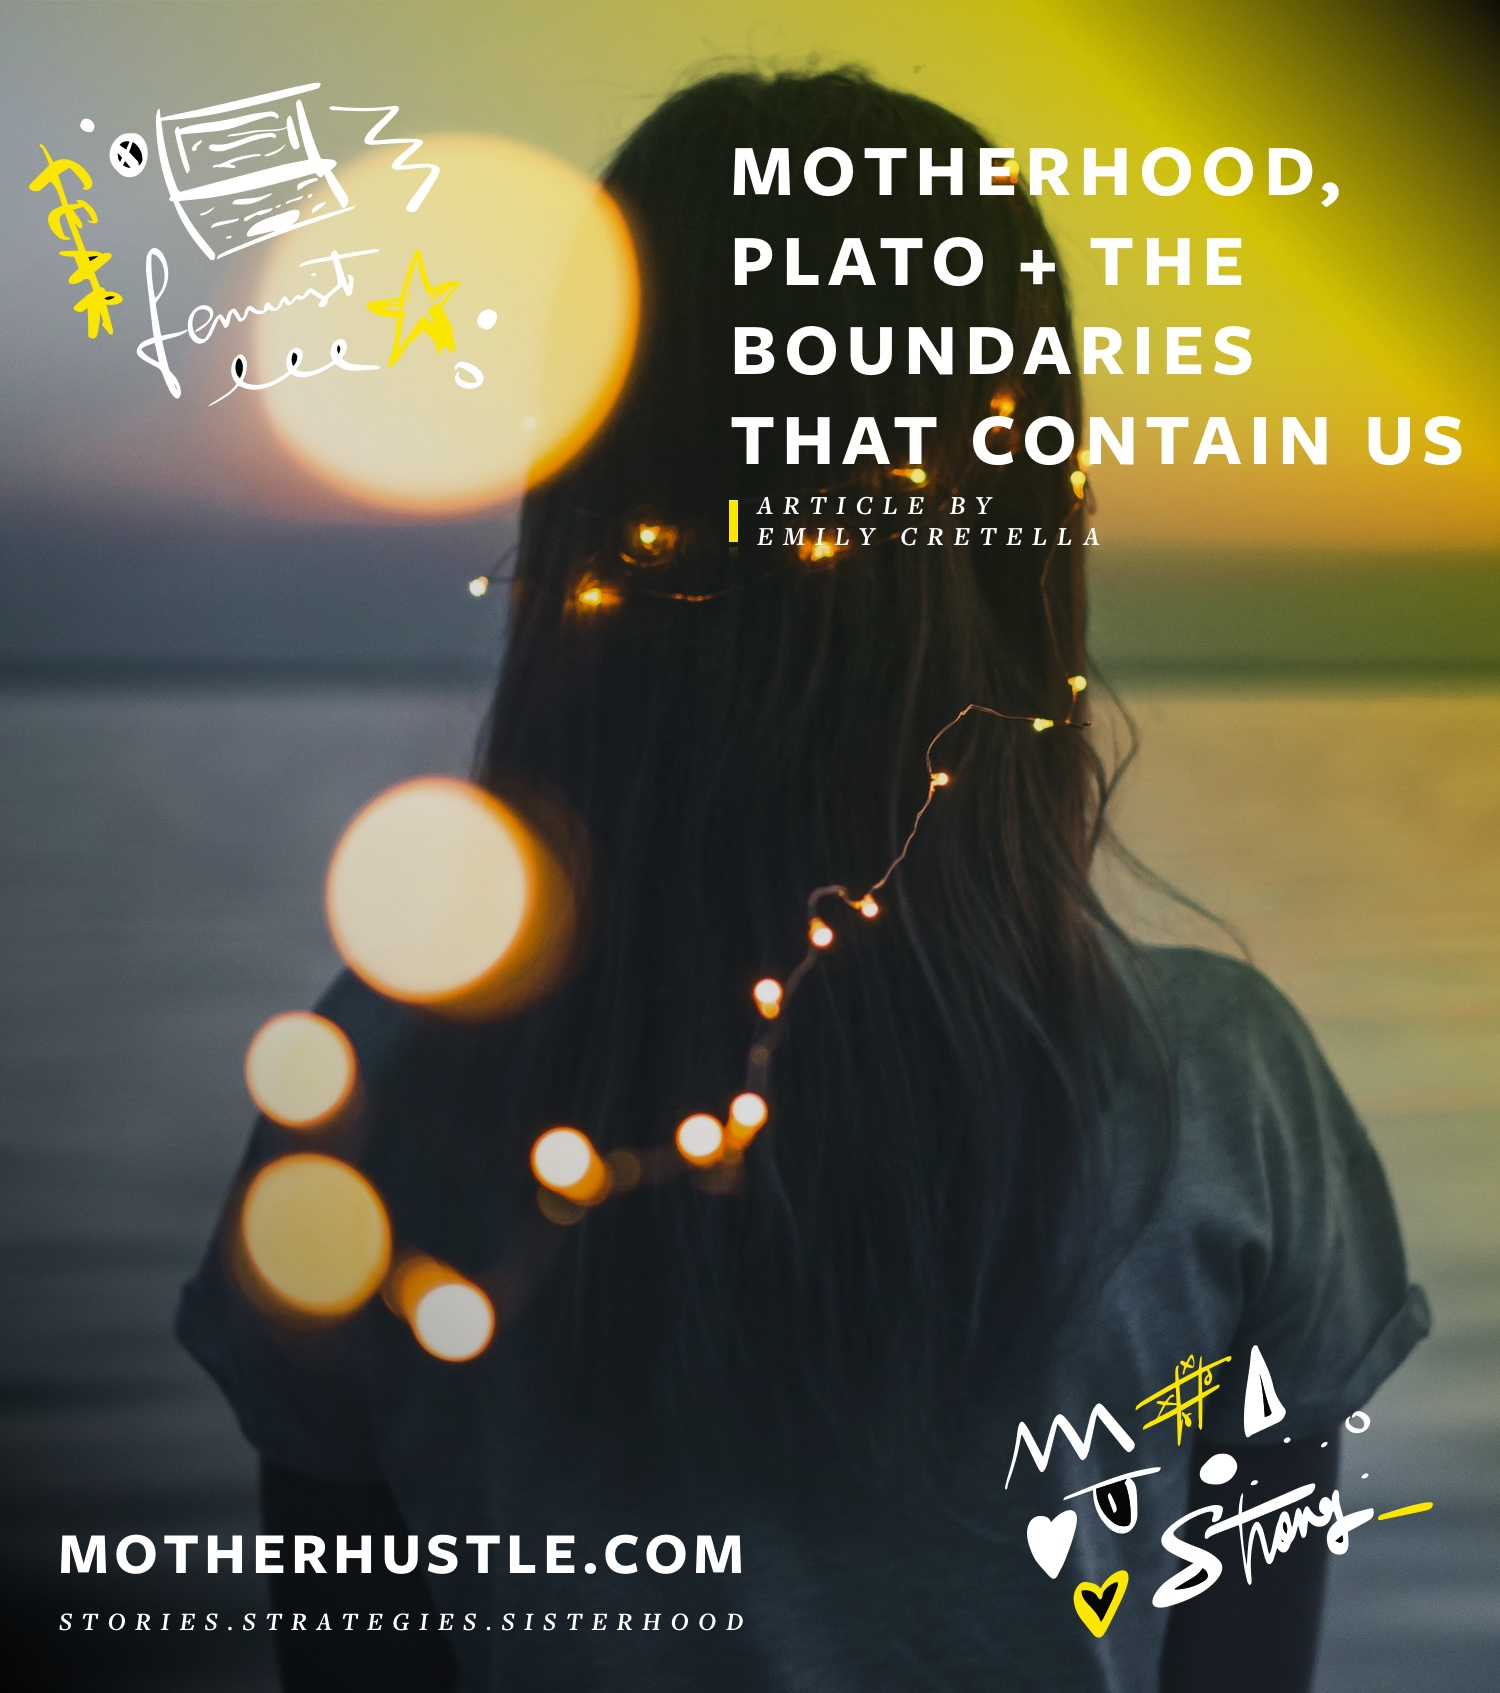 Motherhood, Plato + The Boundaries That Contain Us - By Emily Cretella for MotherHustle